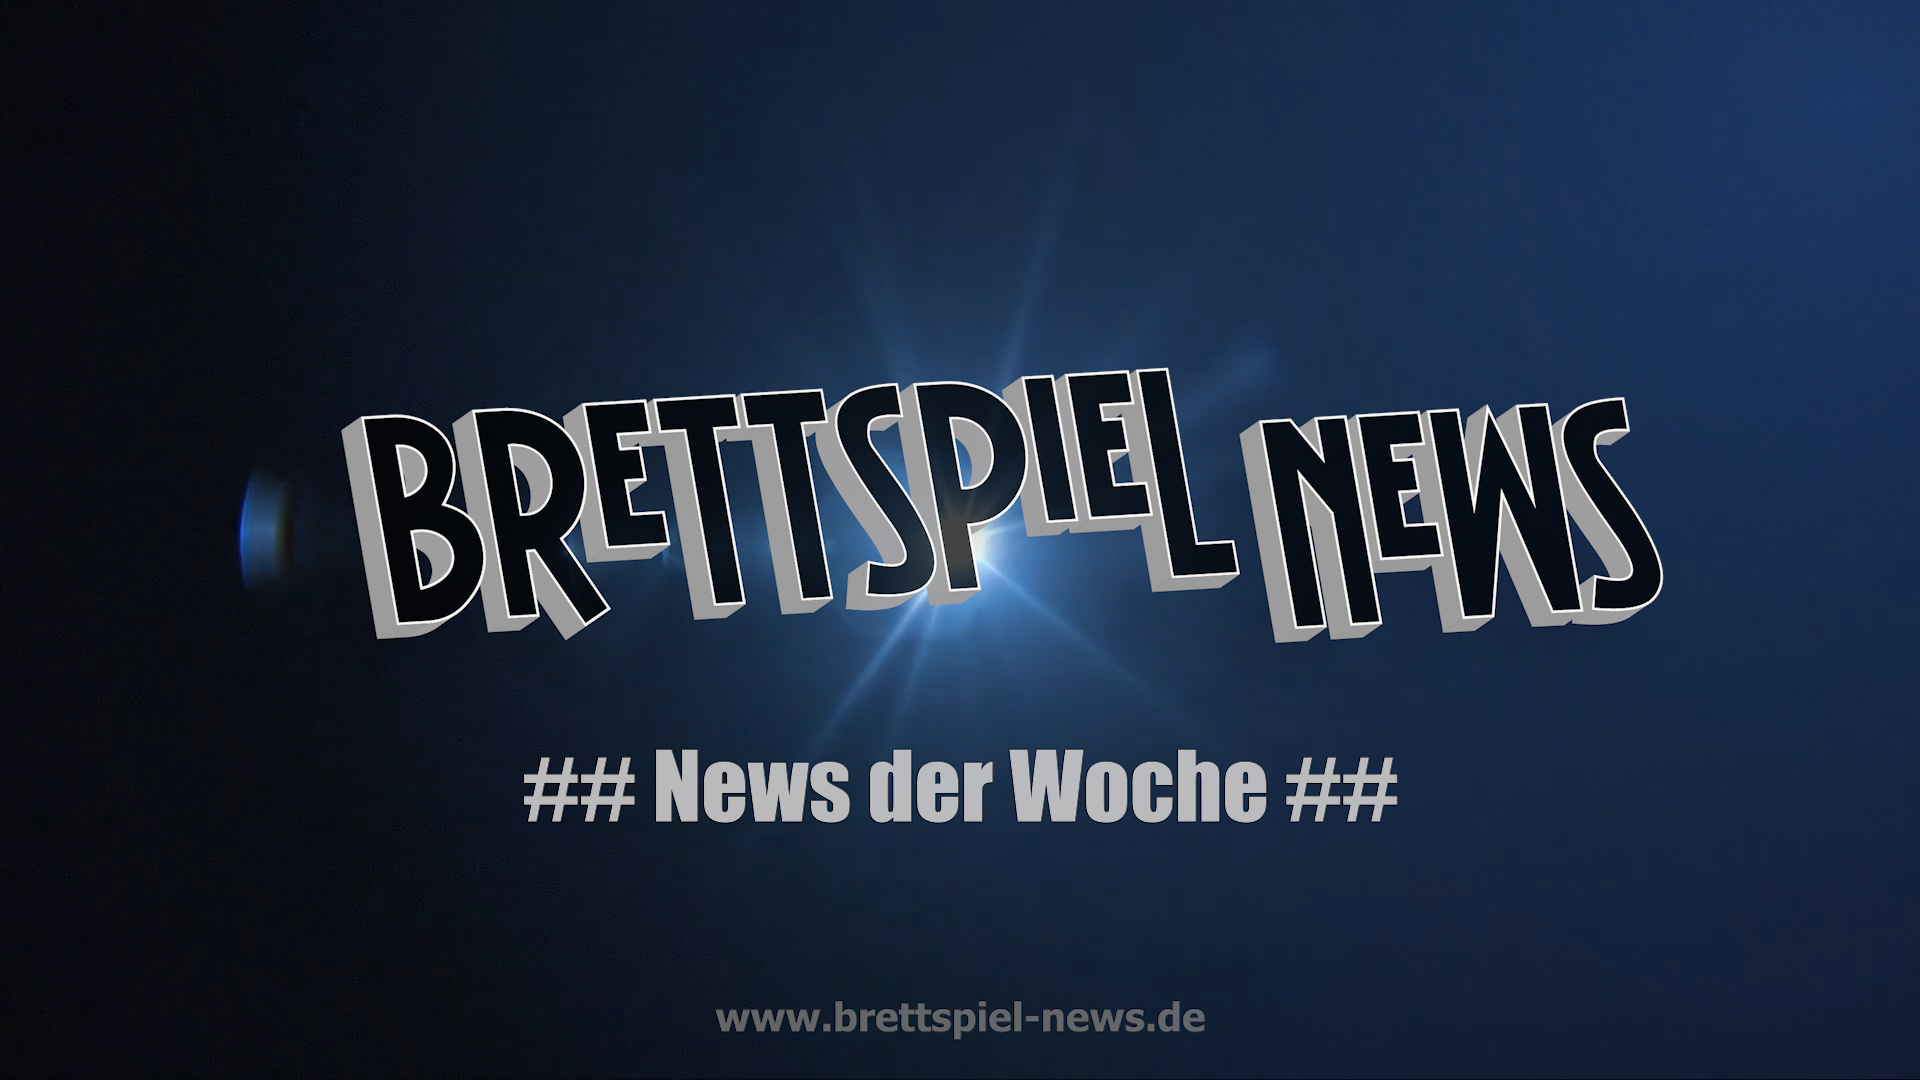 VIDEO // BrettspielNews - KW 11